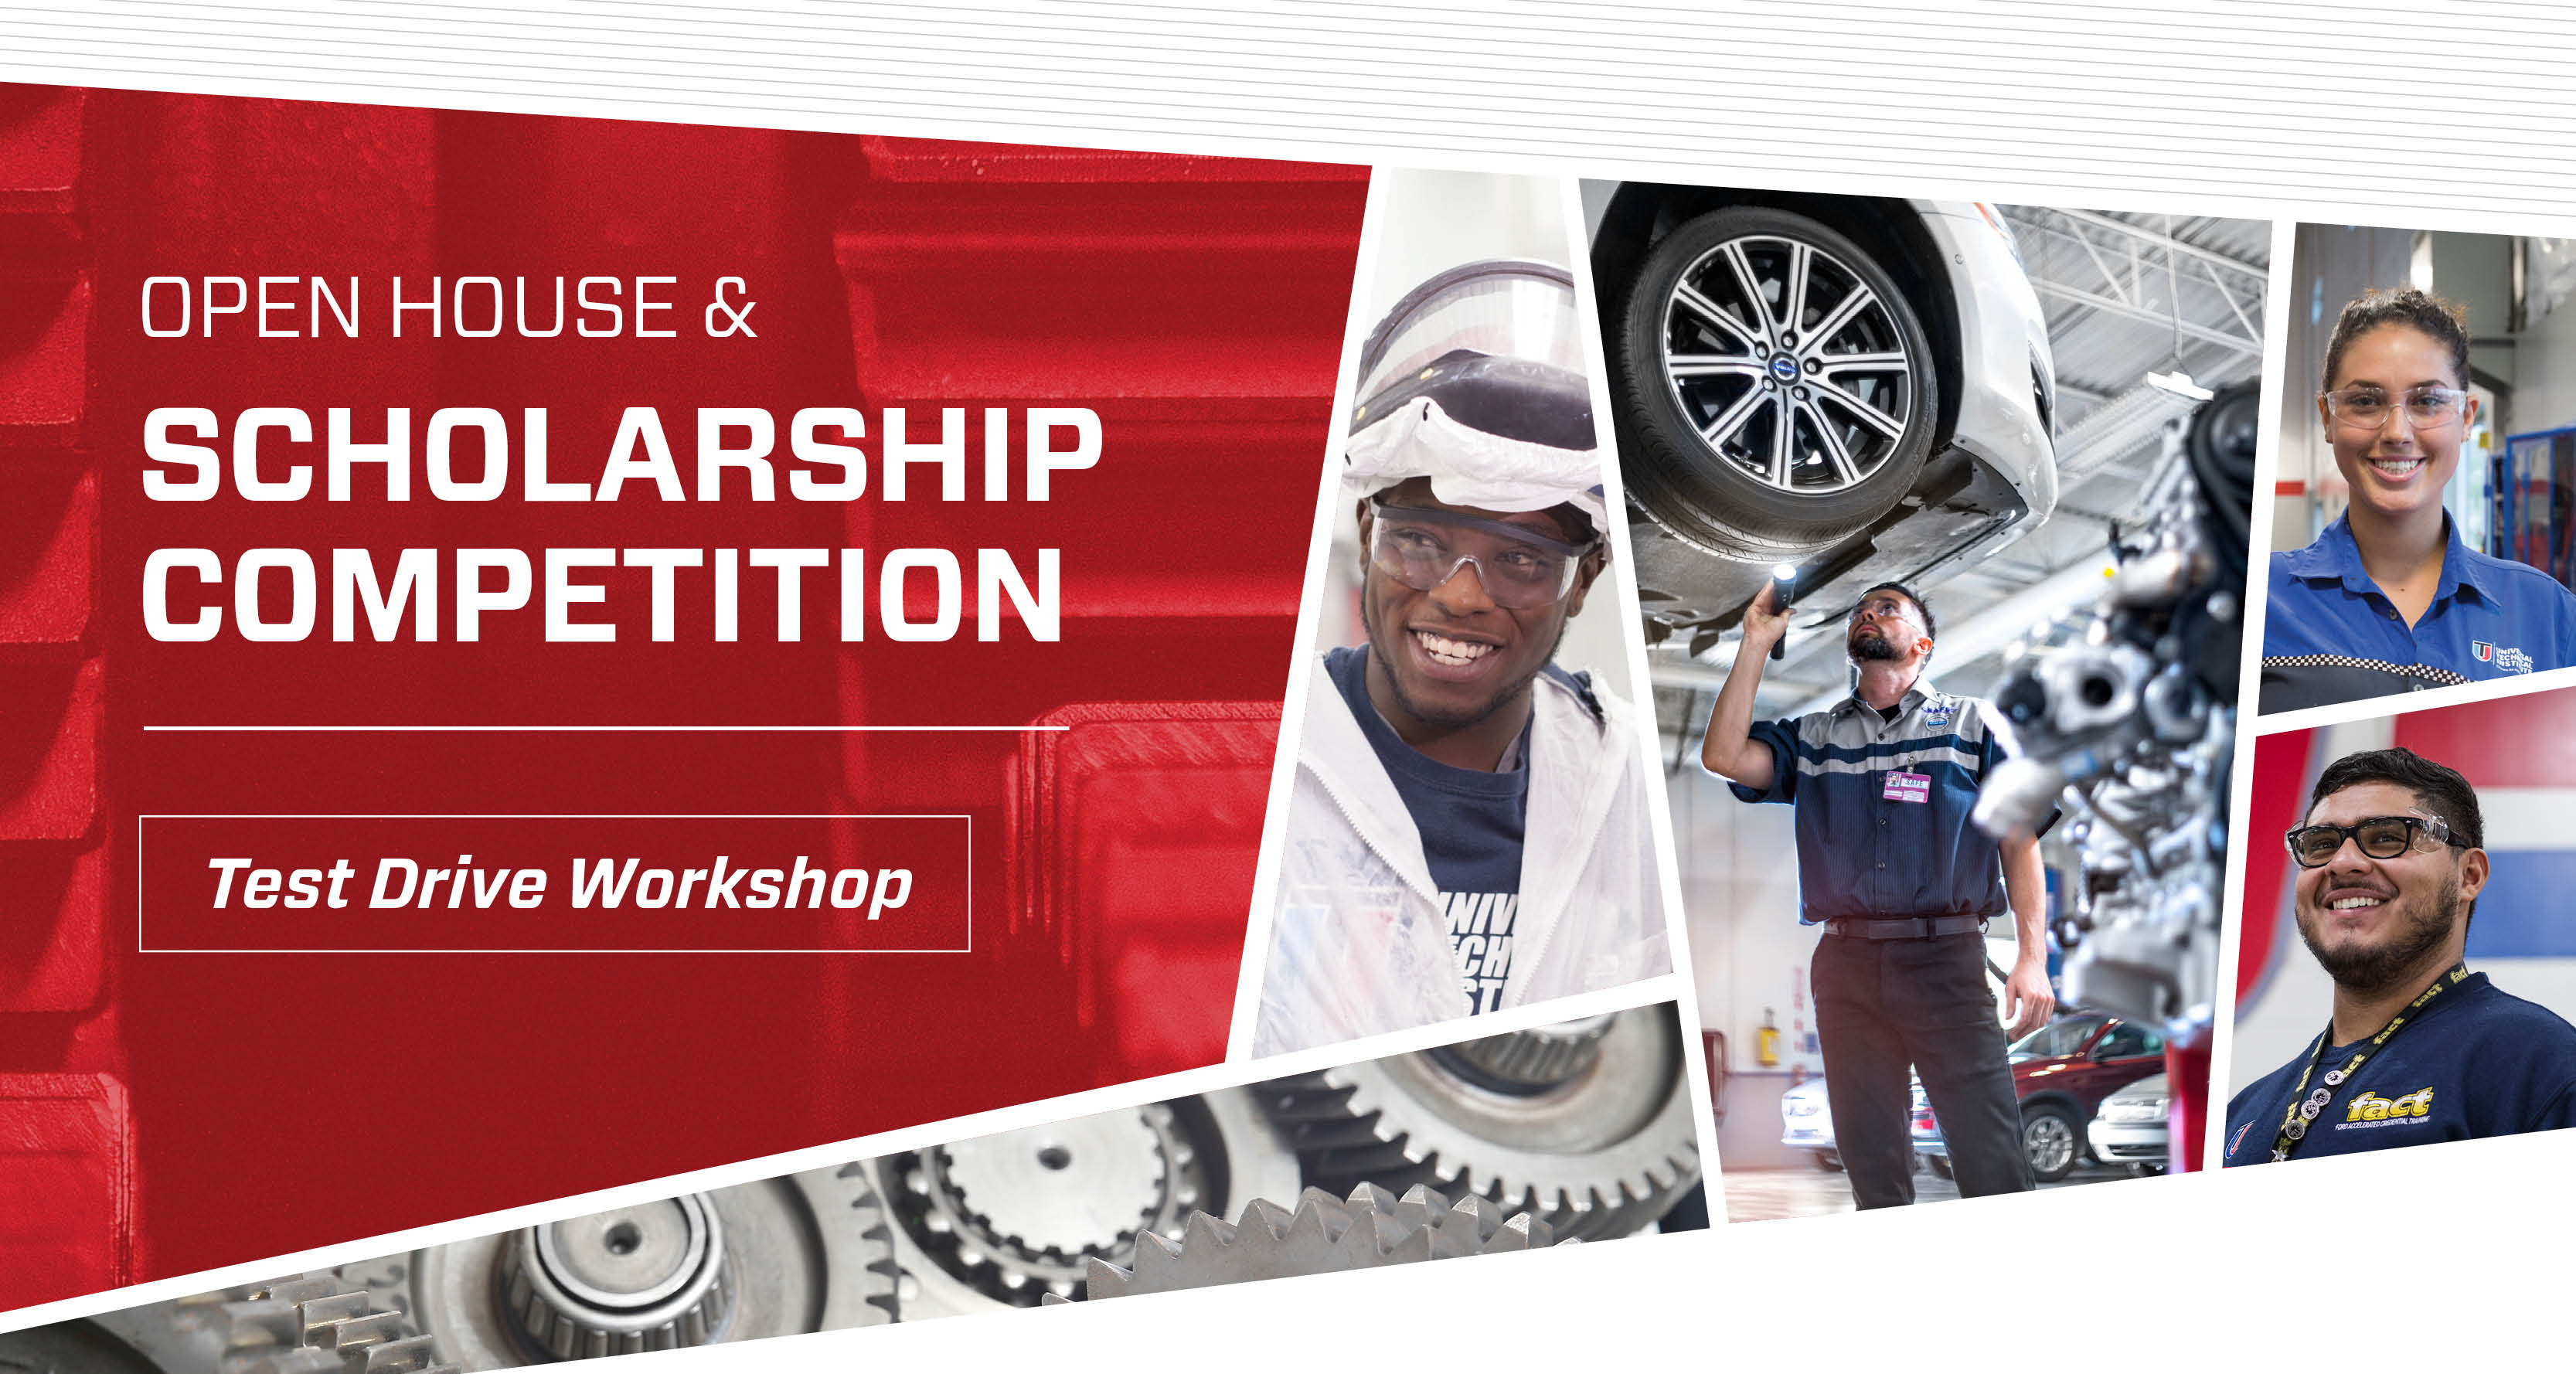 OPEN HOUSE and Scholarship Competition Test Drive Workshop Event